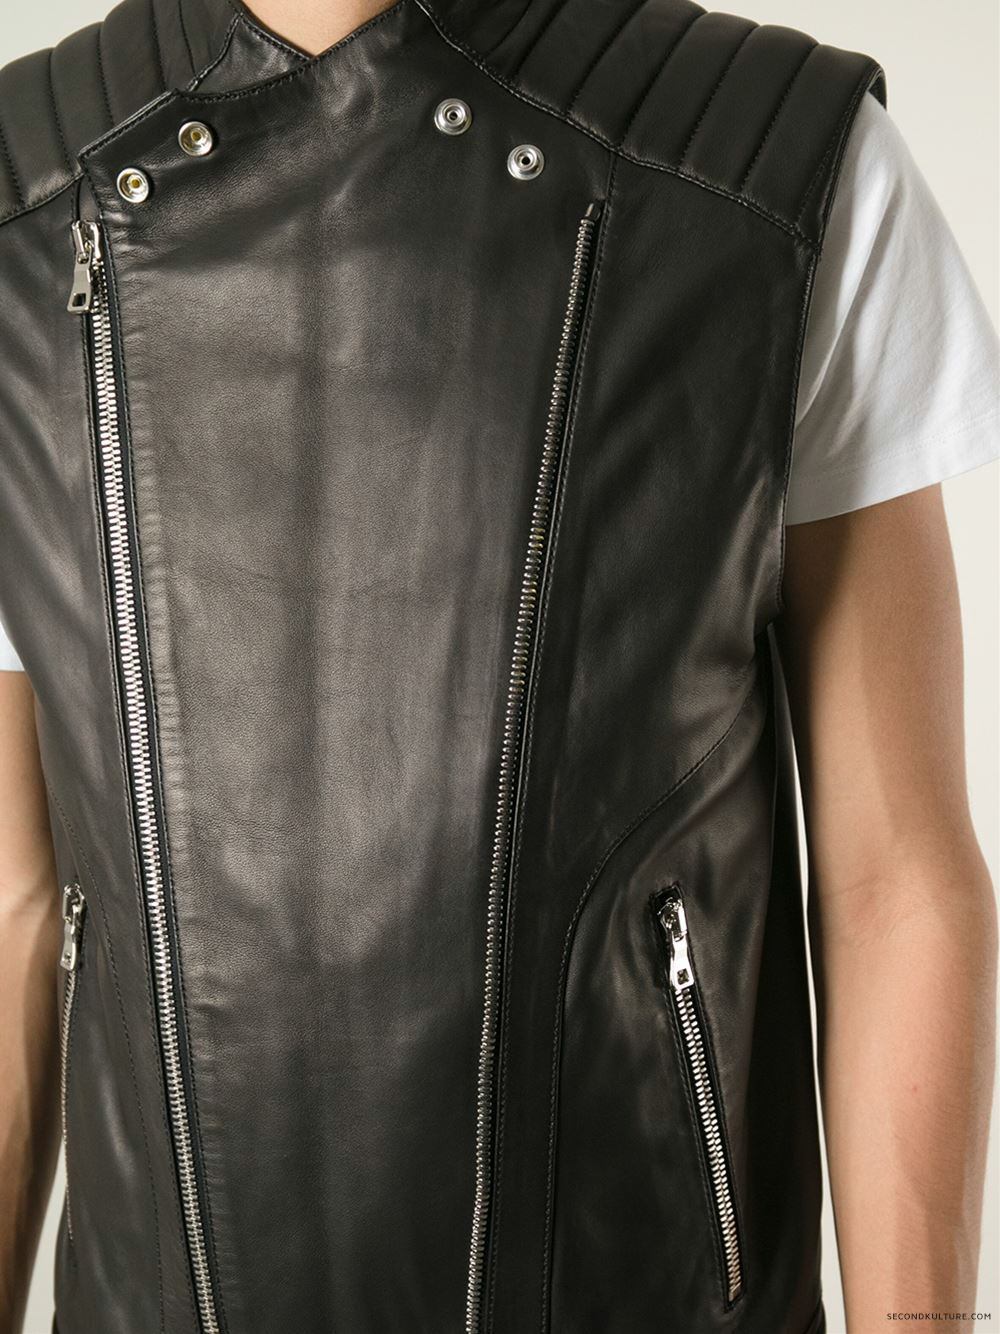 Balmain-Black-Biker-Leather-Zipped-Gilet-Vest-2015-2016-5